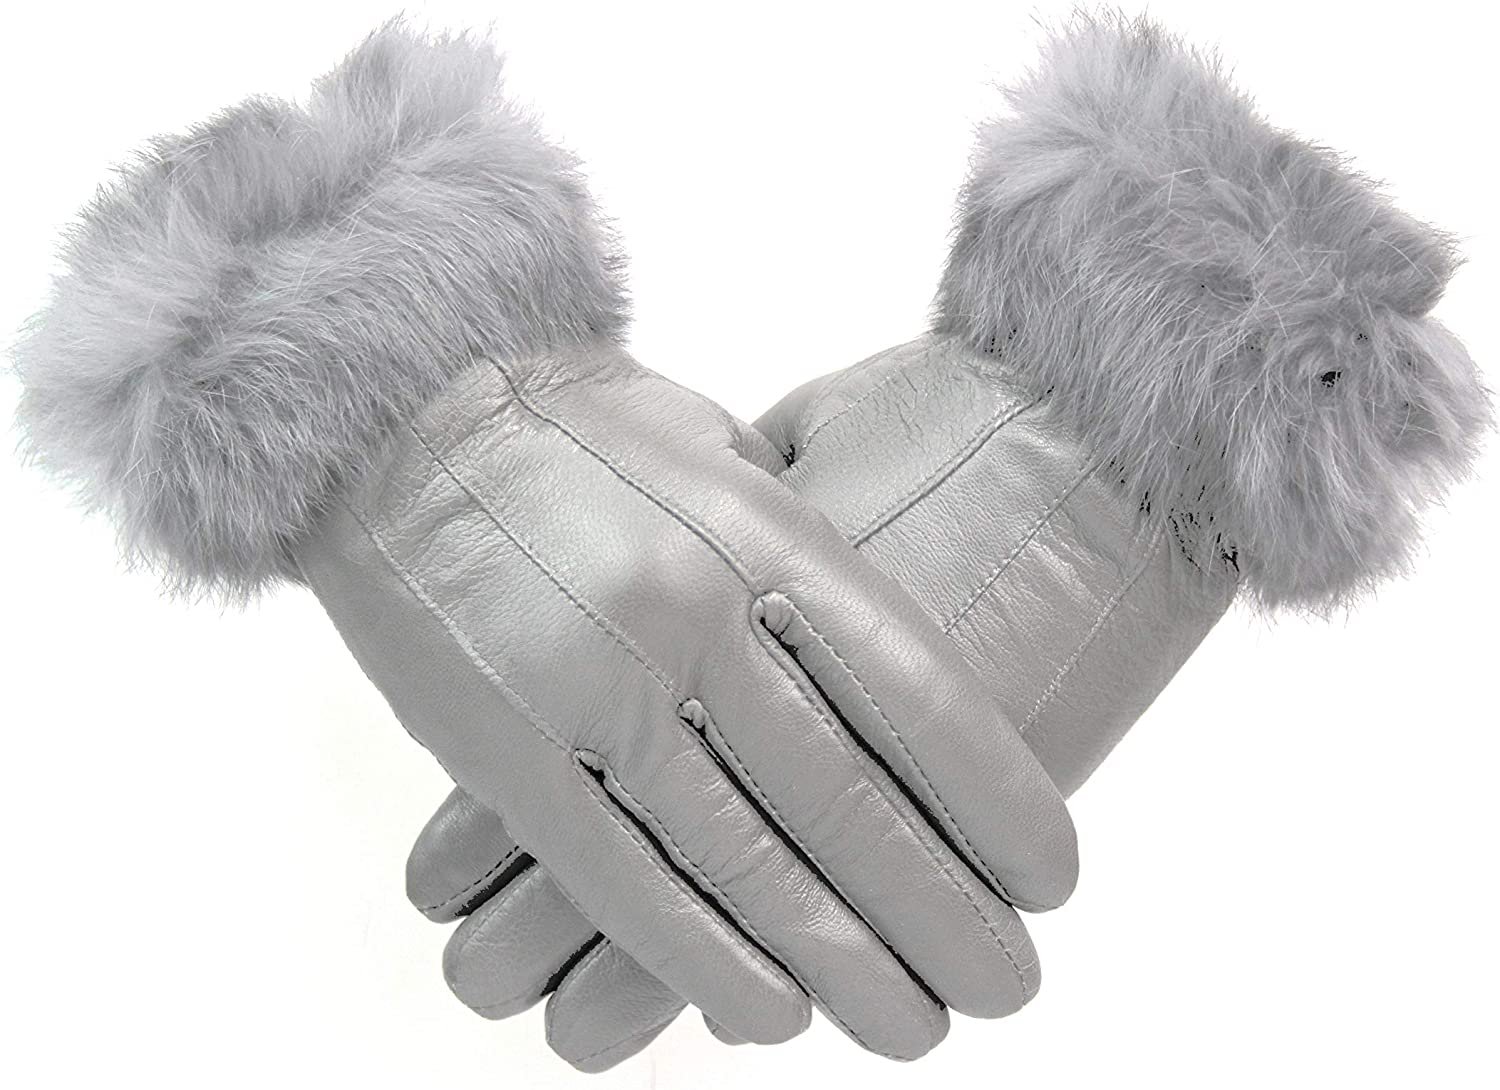 Womens 100/% Leather Winter Gloves With Fur Trim Fleece Lined Ladies Warm Christmas Gift Different Colours M L XL FREE UK POSTAGE